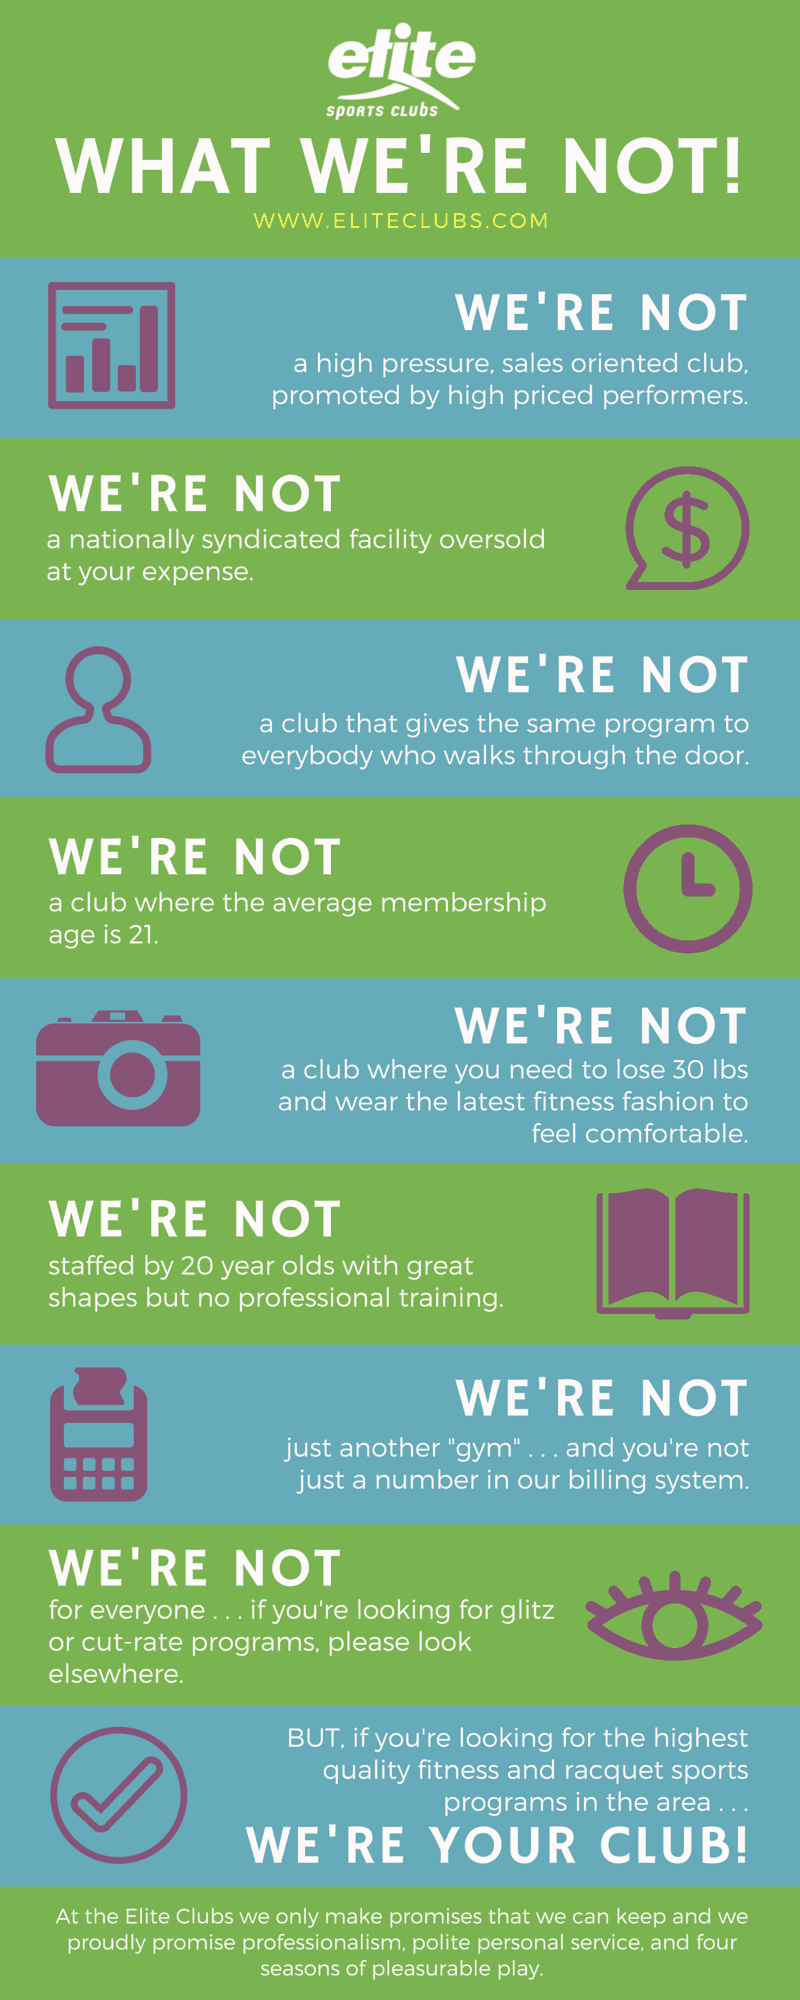 Elite Clubs - What We Are Not Infographic